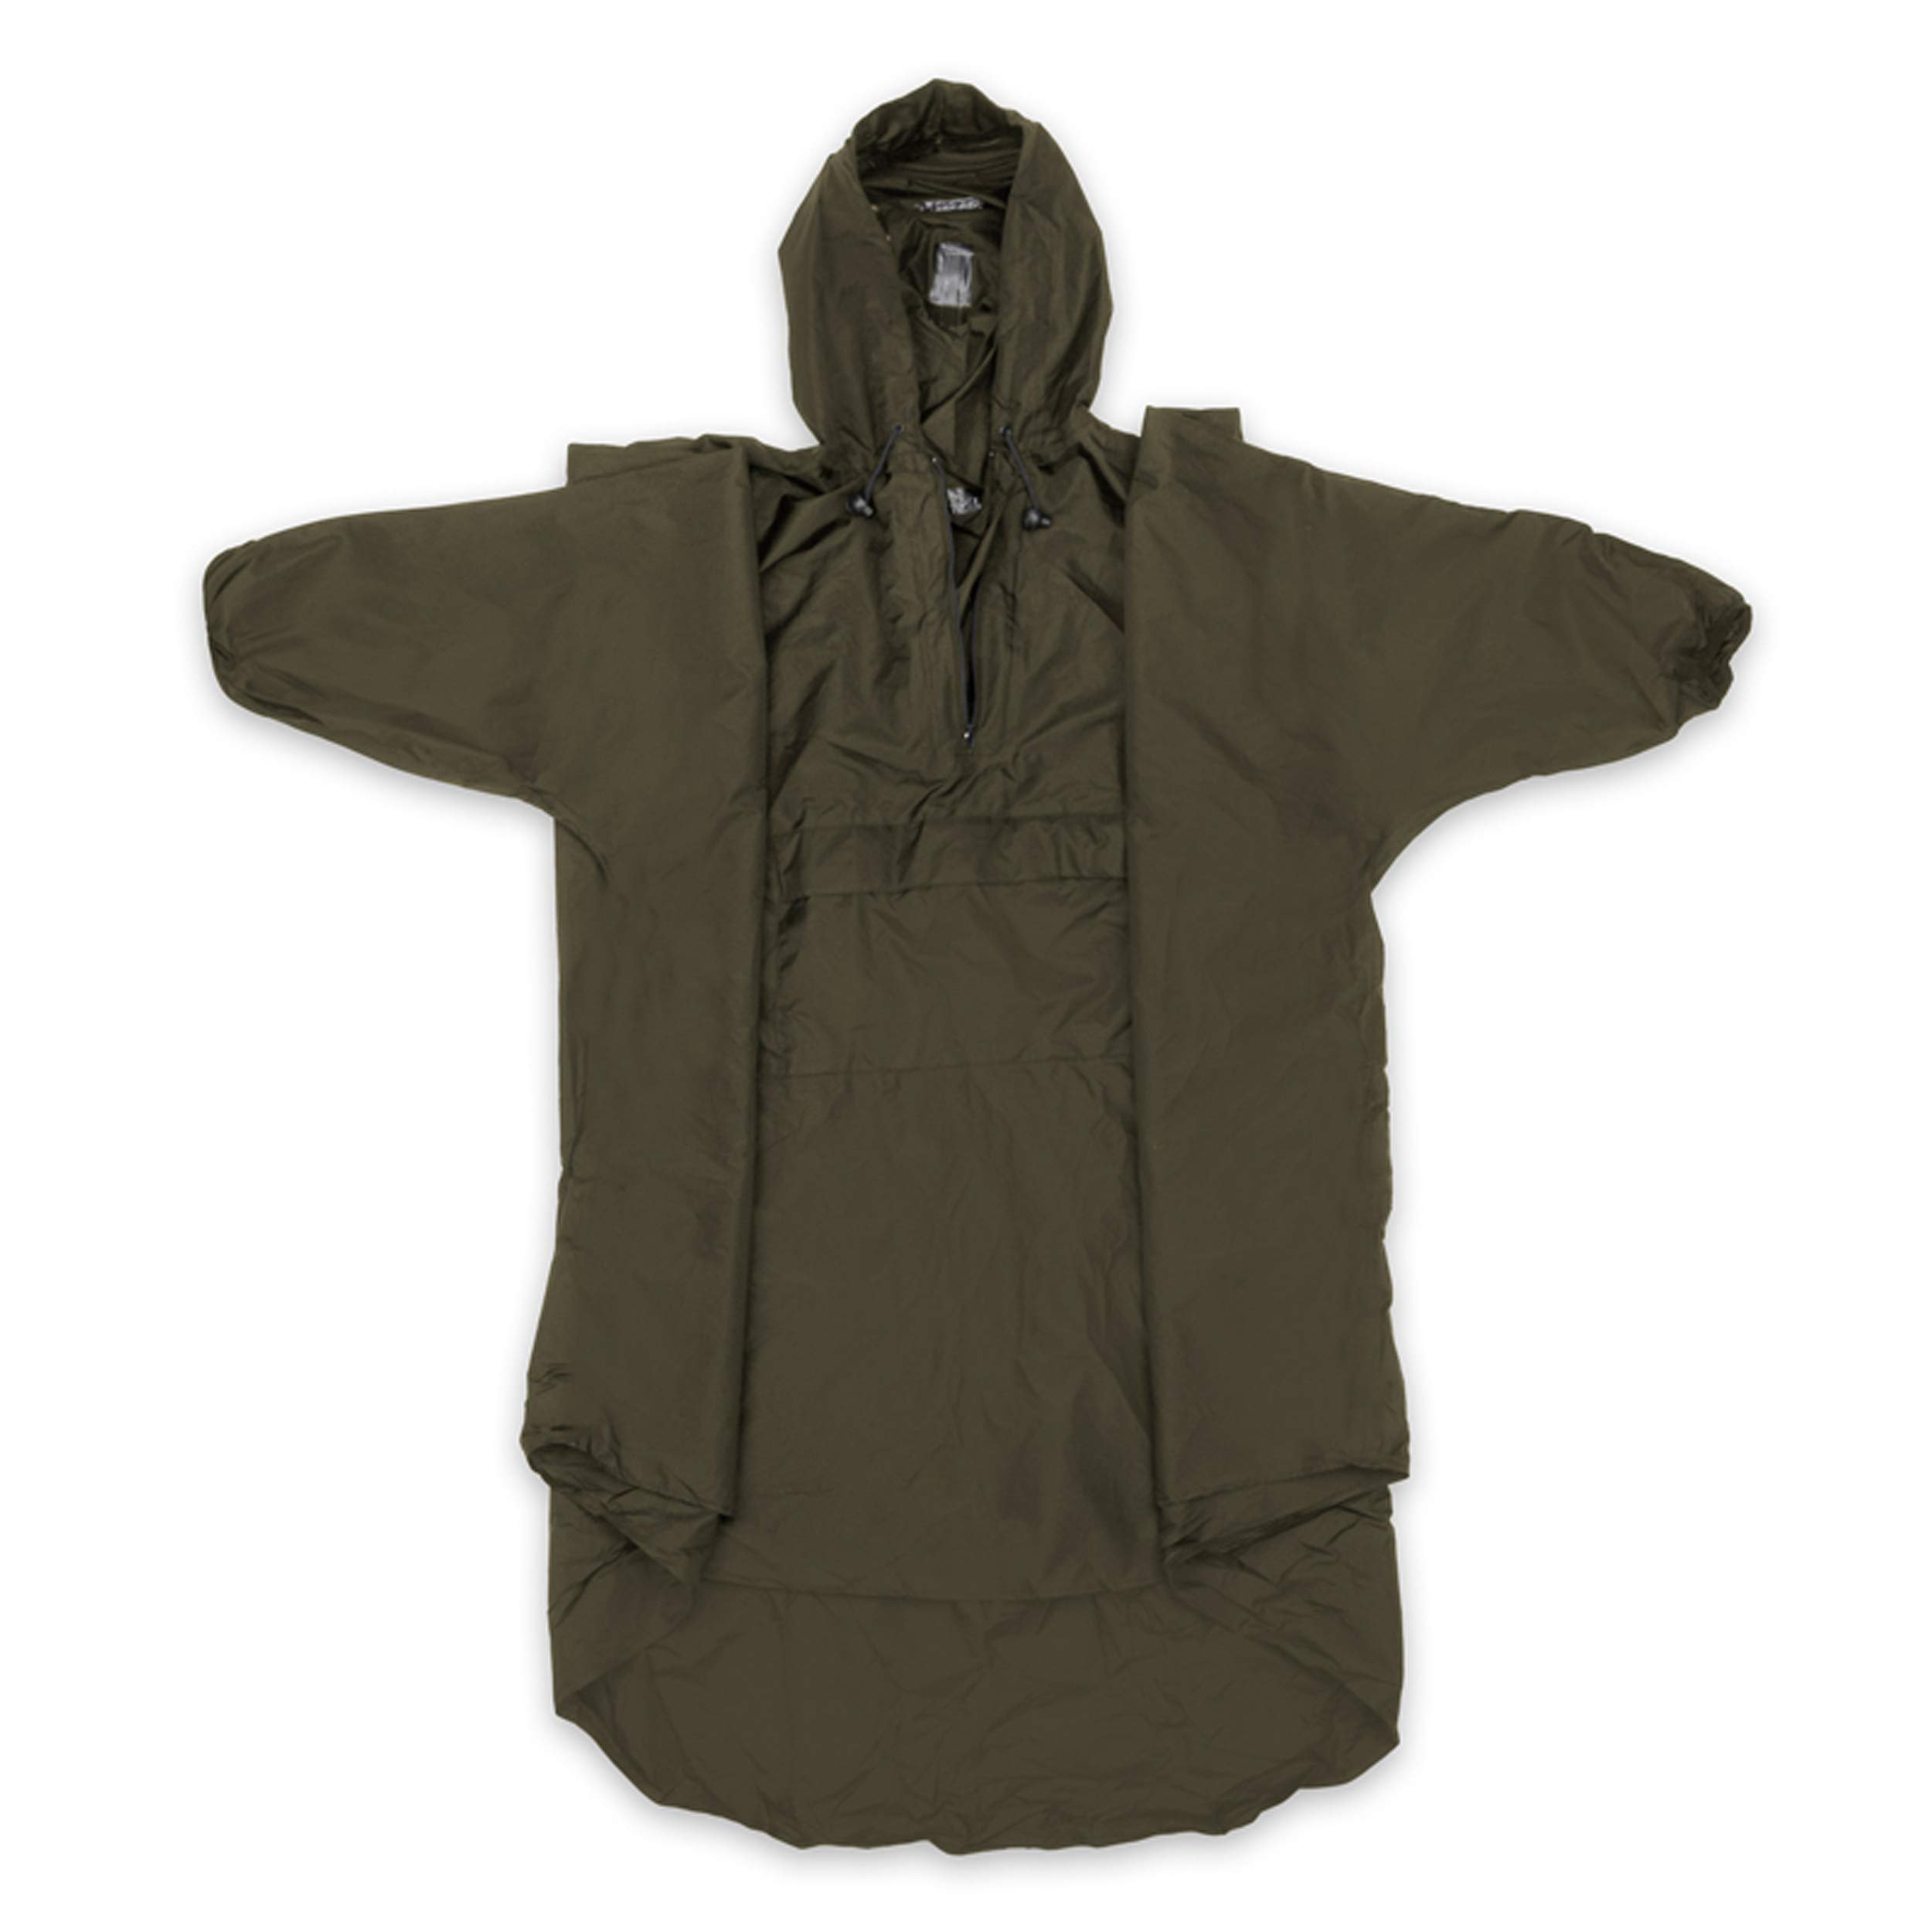 Snugpak Patrol Poncho, Waterproof, One Size, Lightweight, Suitable for Hiking, Camping, and Hunting, Olive by Snugpak